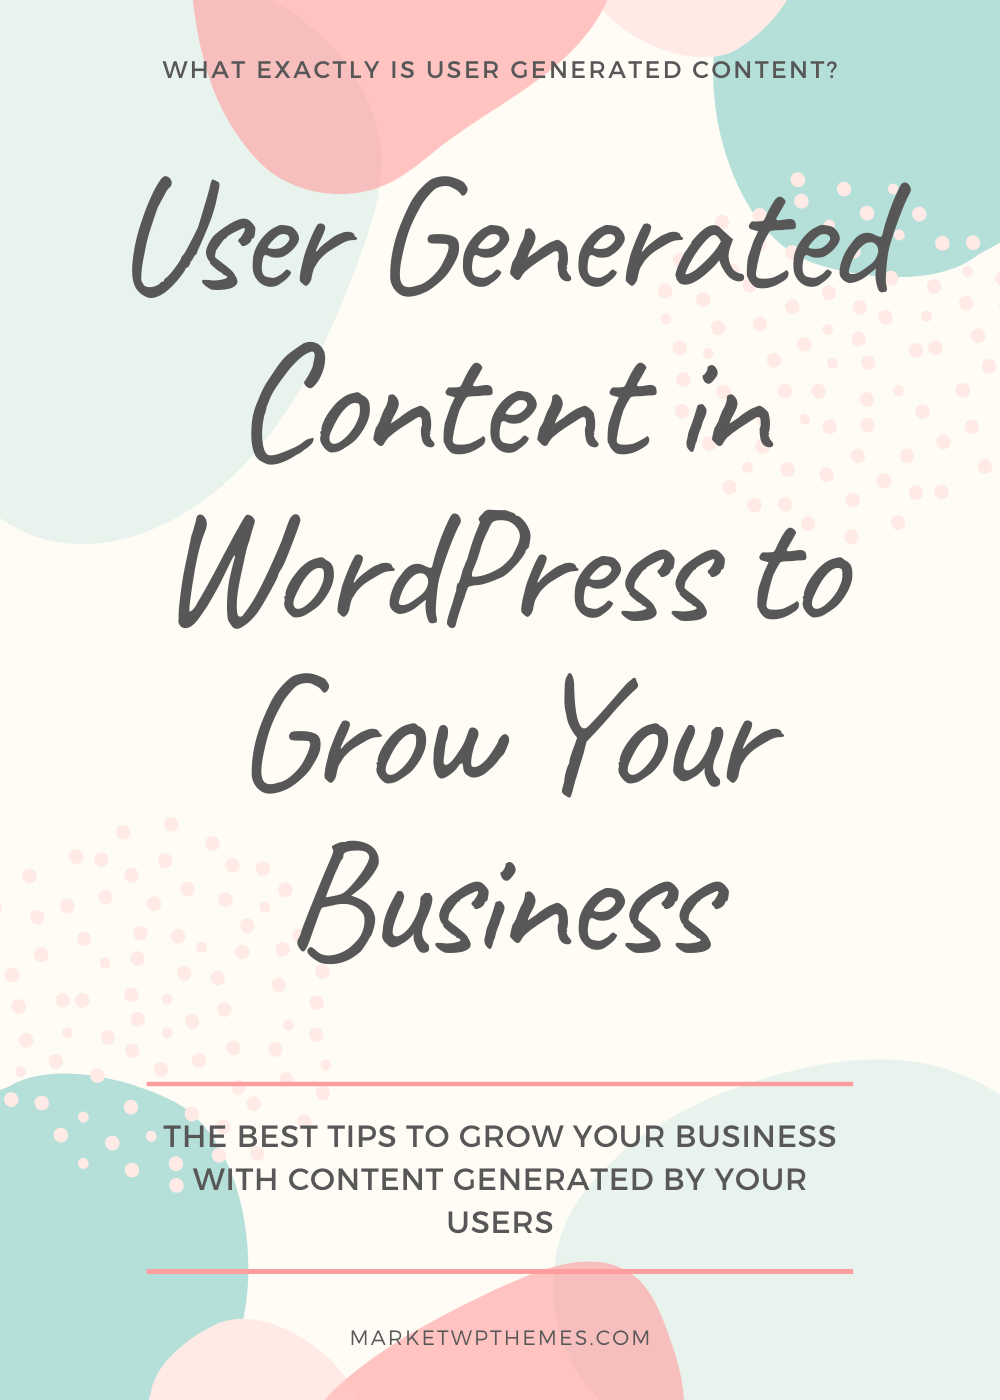 User Generated Content in WordPress to Grow Your Business